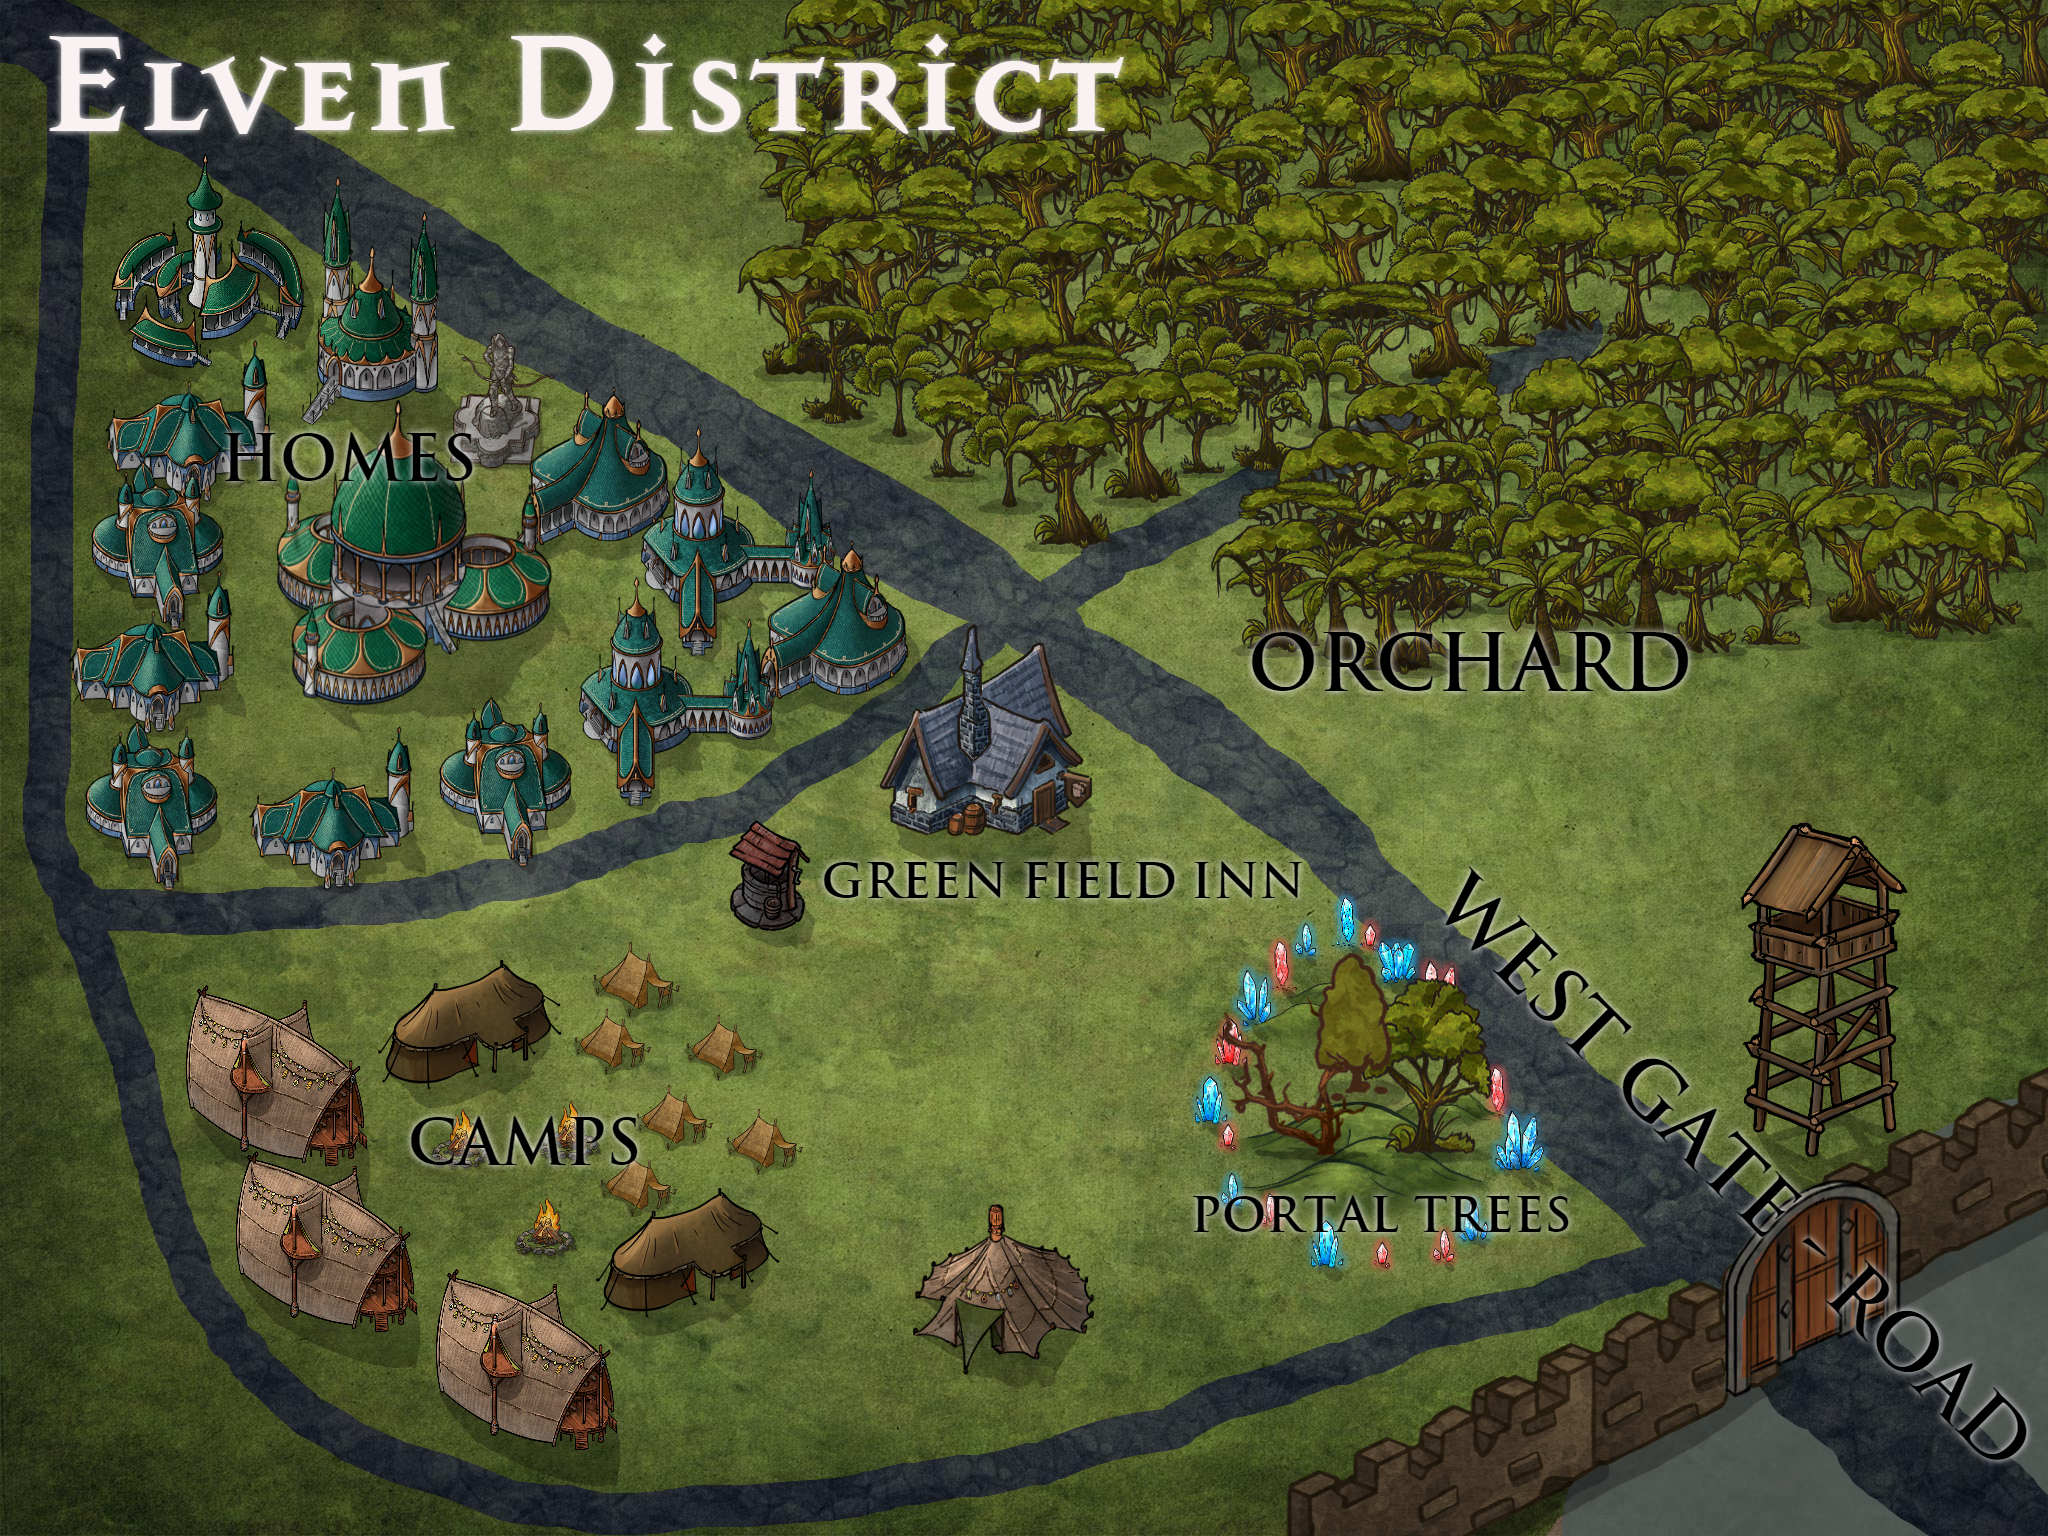 Elven District